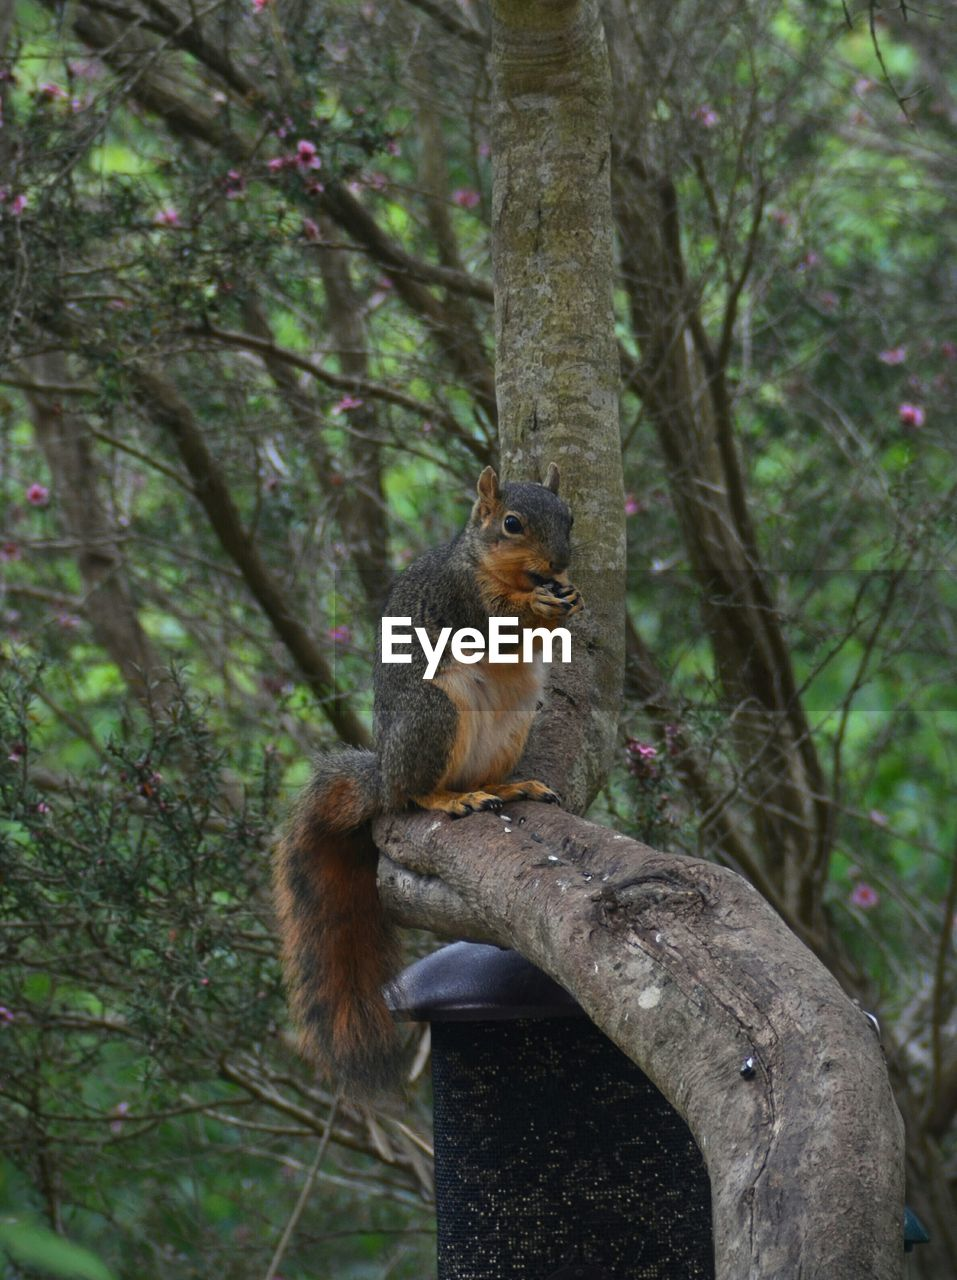 Close-Up Of Squirrel On Branch In Forest